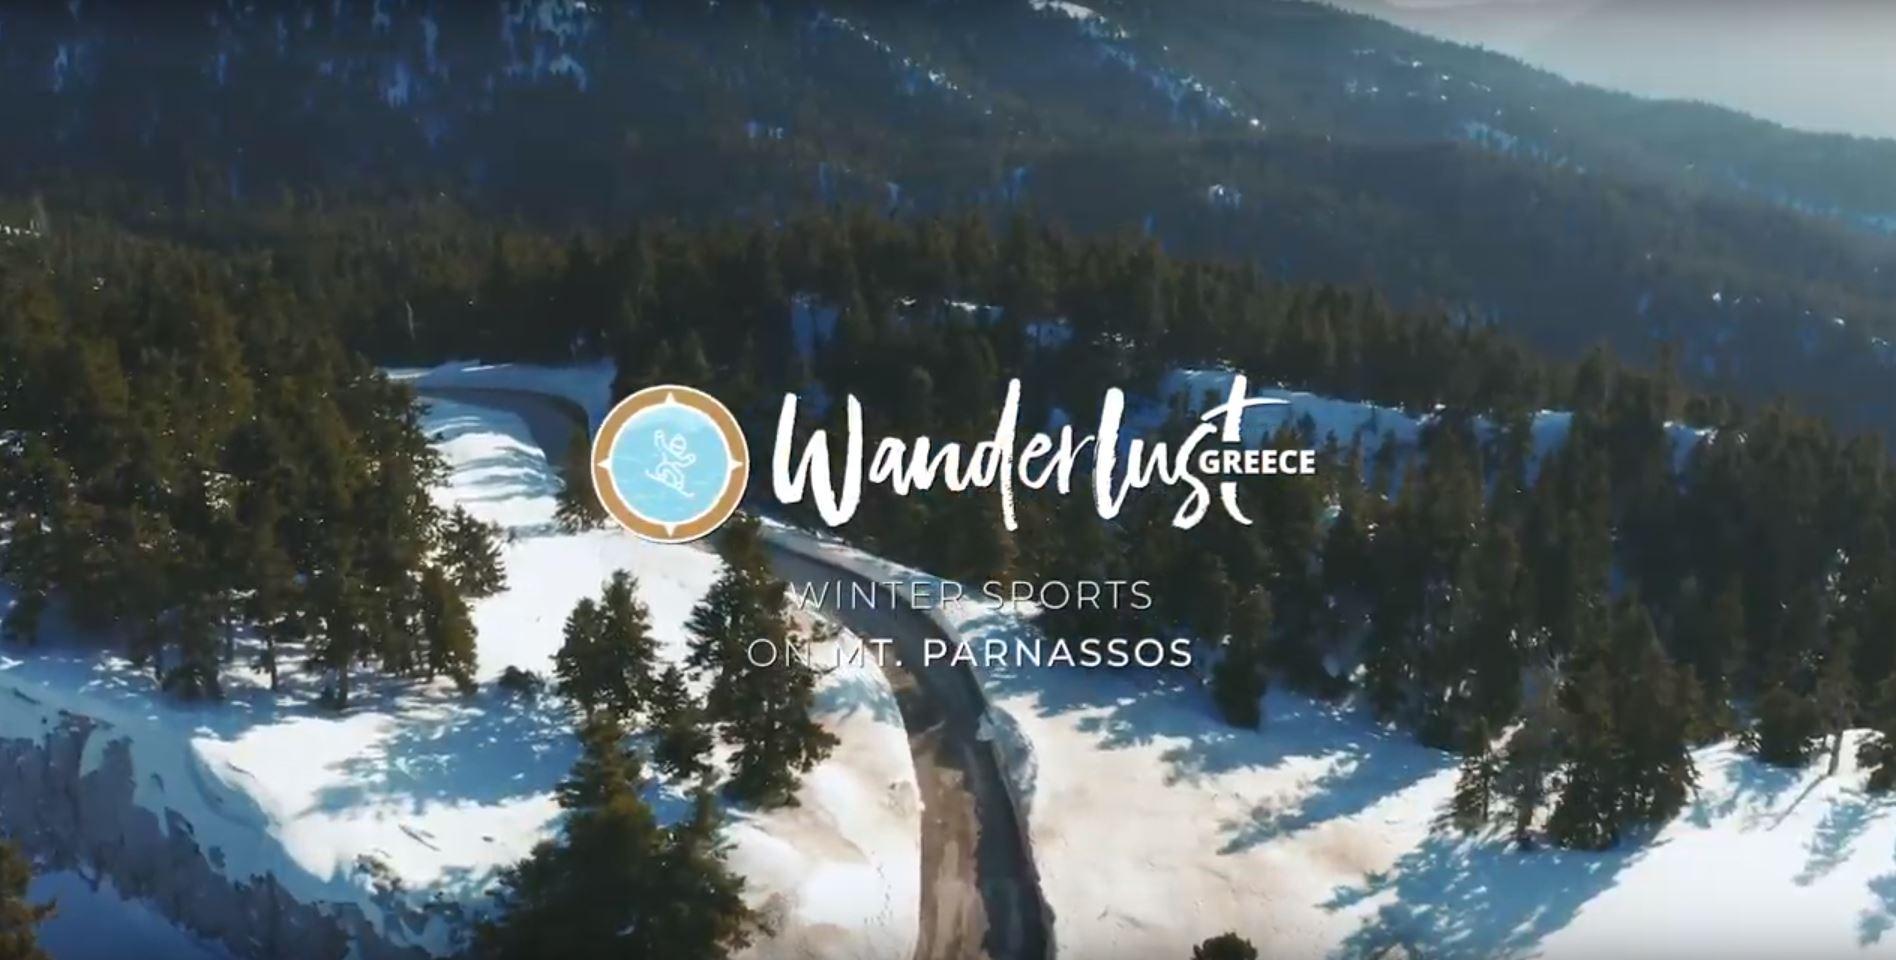 Winter Sports on Mt. Parnassos - video